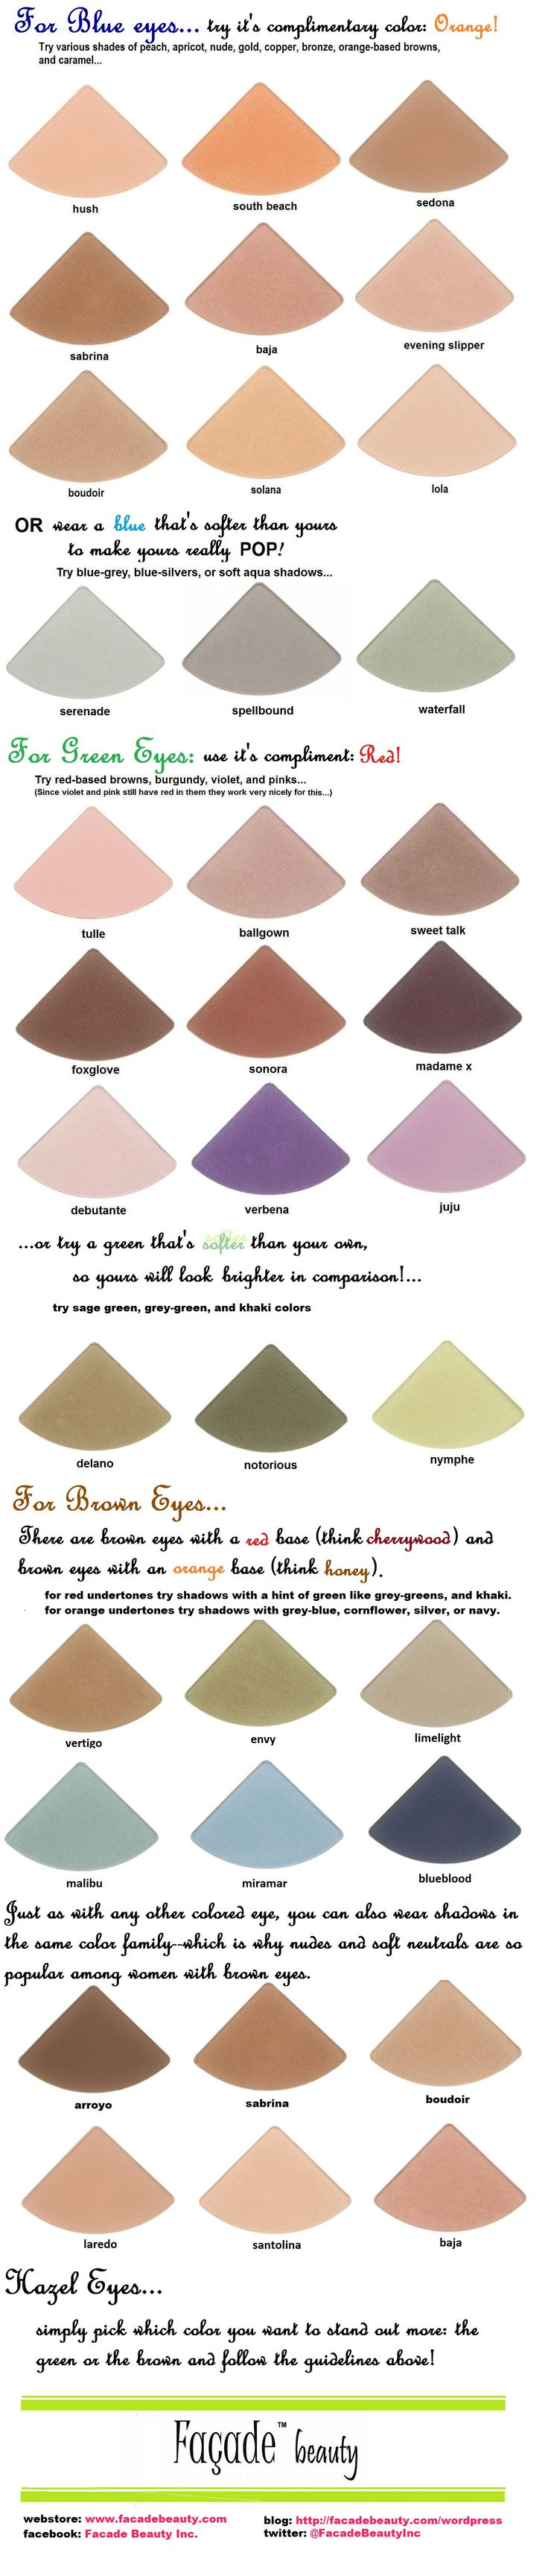 Excellent chart for best eyeshadows for blue, green, brown & hazel eyes. I will say though, that sometimes picking a shadow the same color as your eye creates a dull kind of plain look. Its not as attractive as using a complimentary color for your eyes.